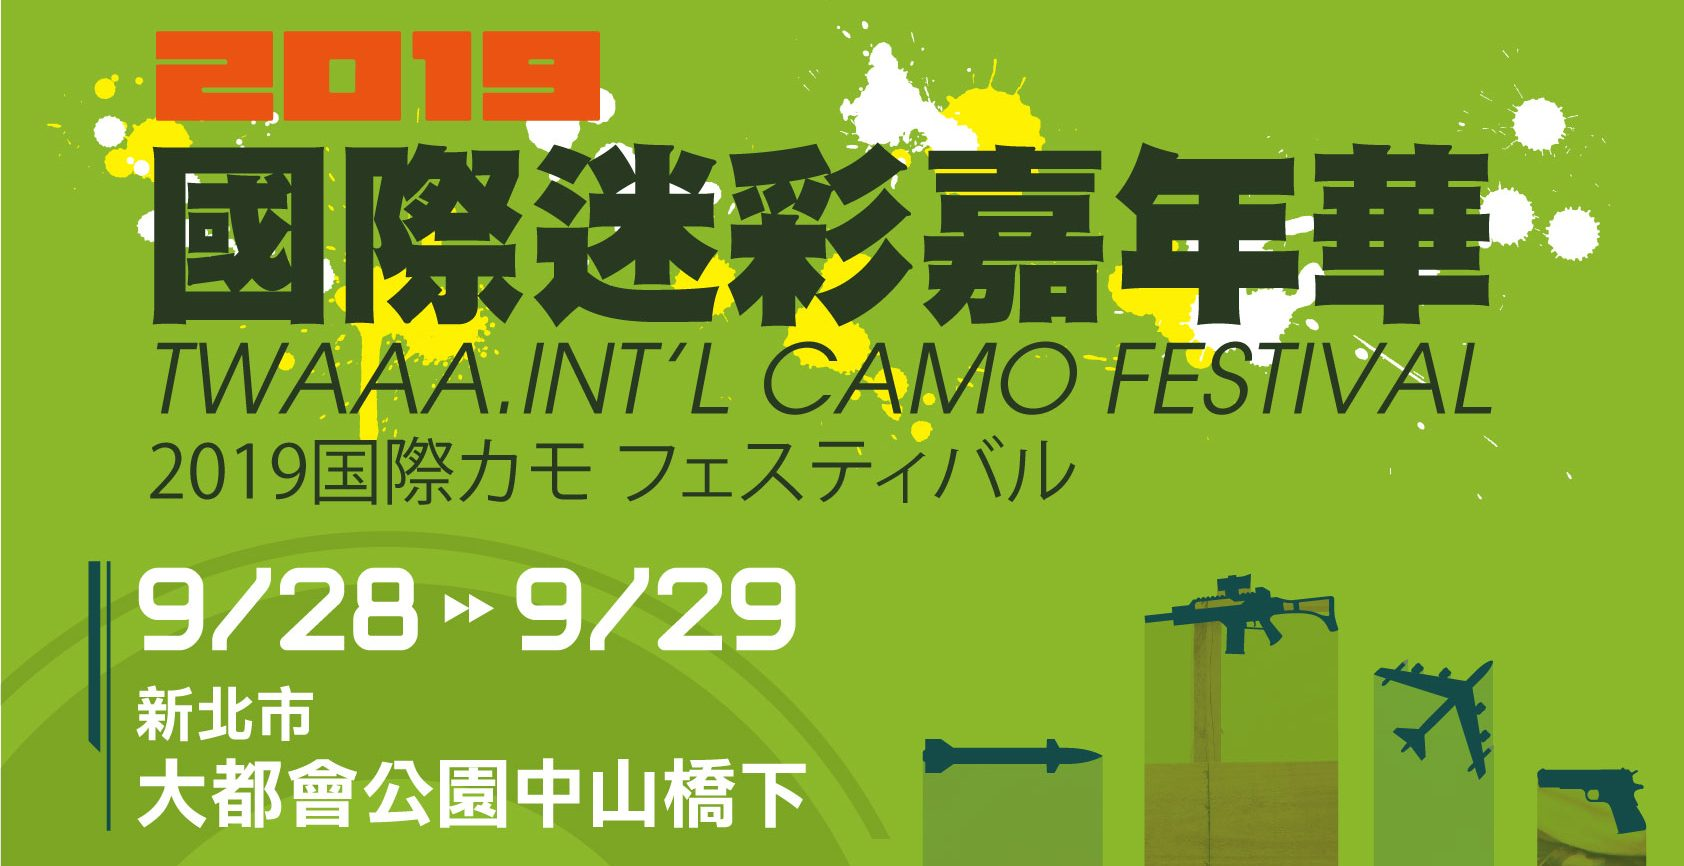 Thousands Attend Taiwan Camo Fest 2015